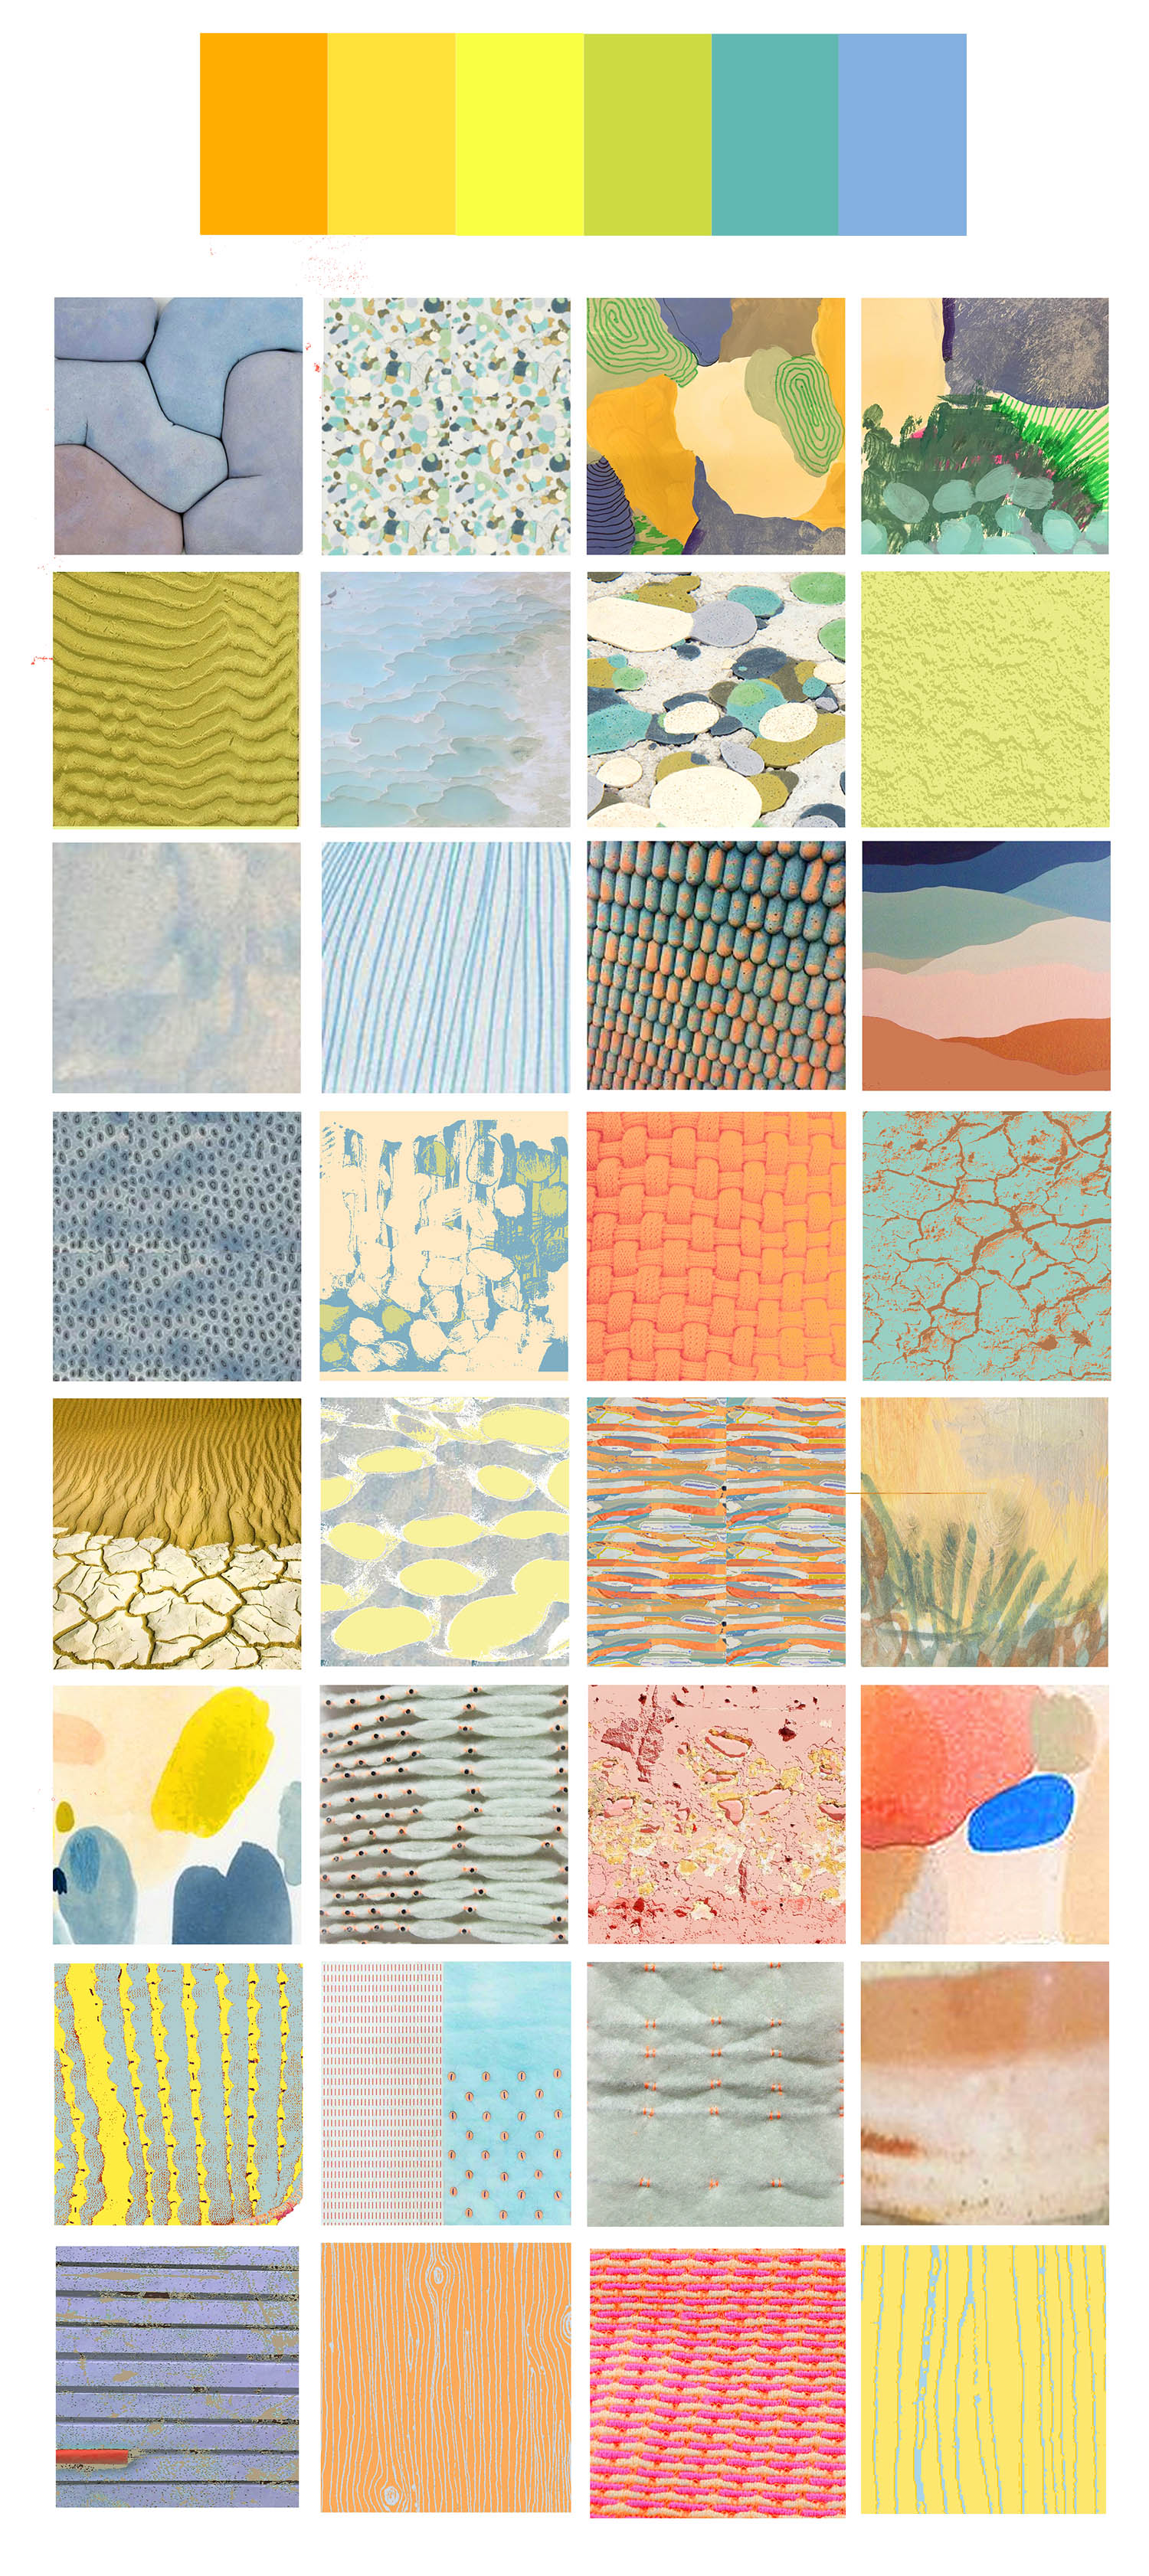 Inspiration board of uplifting and earthy tones and mixing of natural and geometric patterns